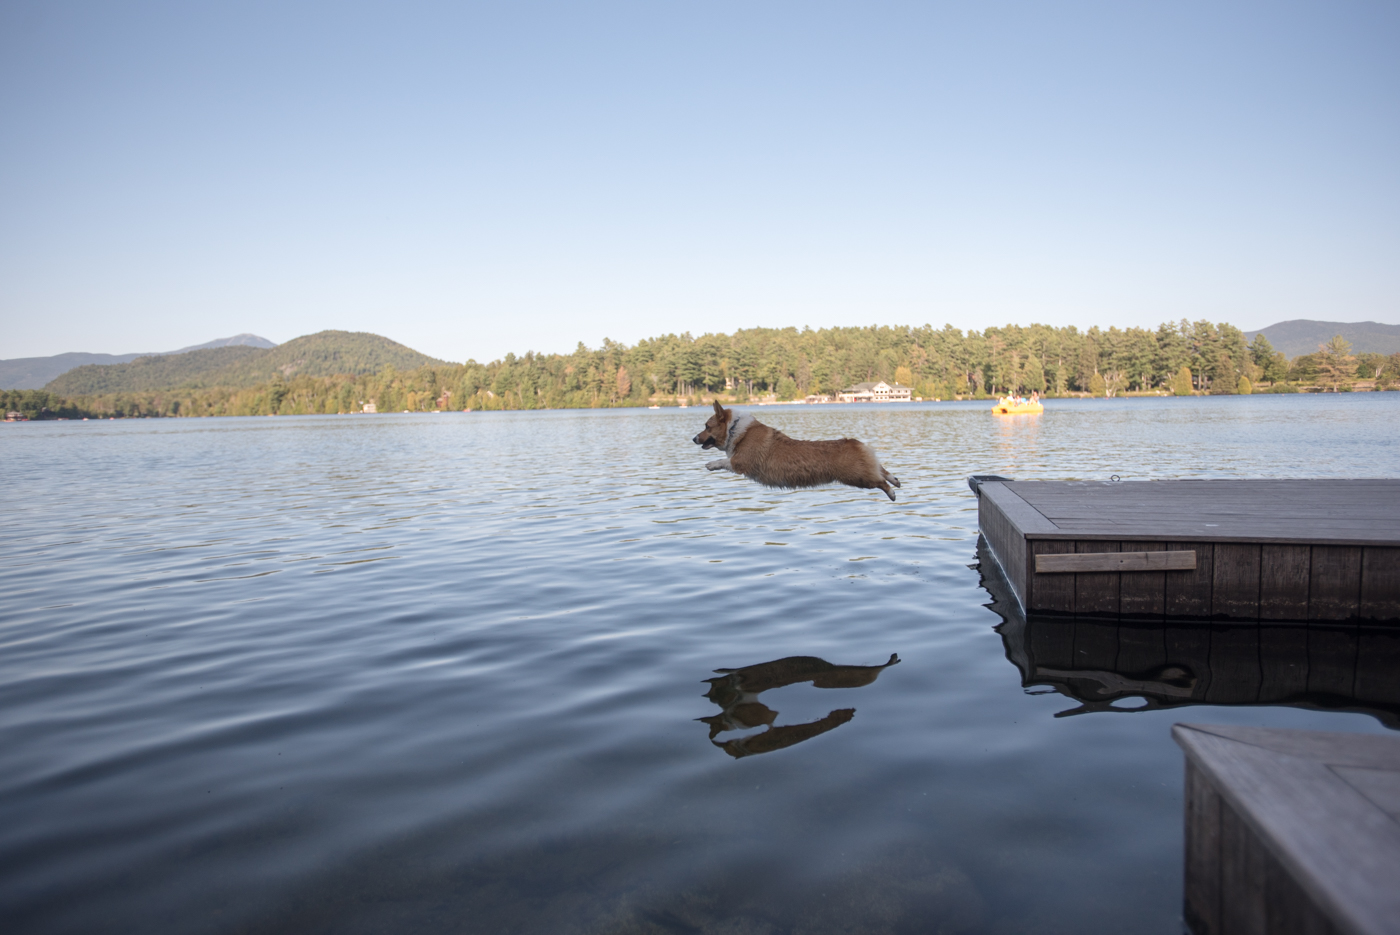 dog jumping off a dock